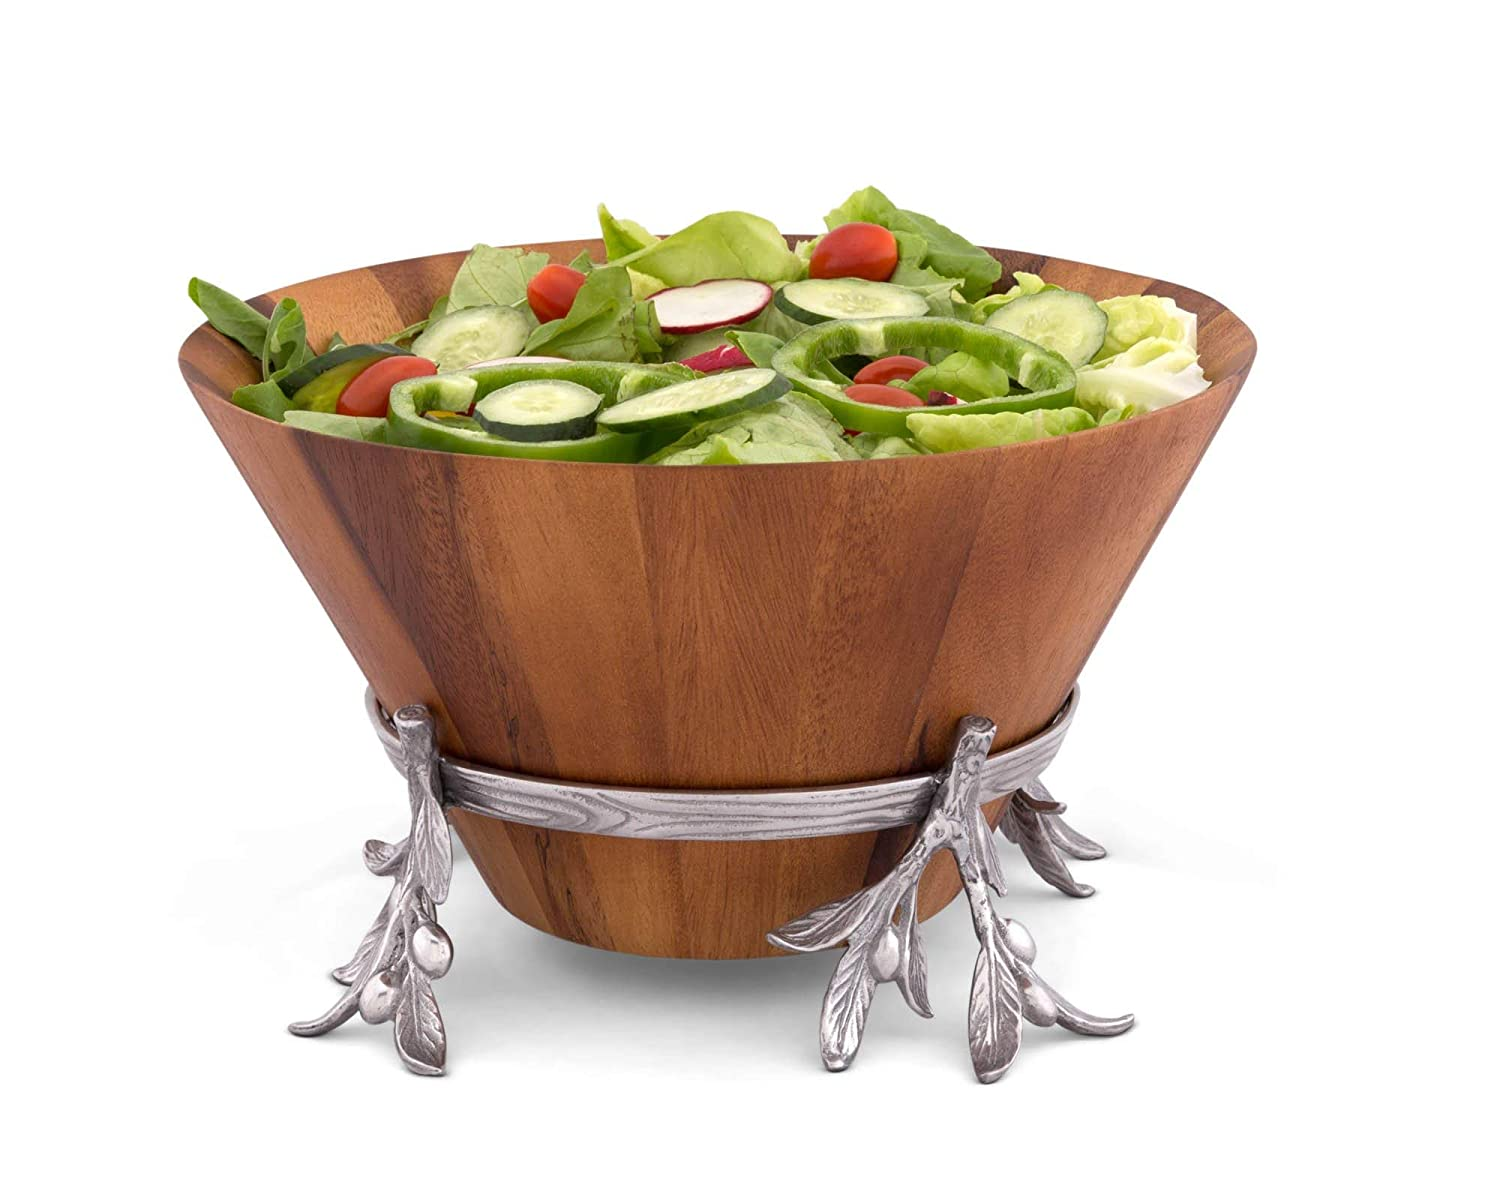 """Arthur Court Acacia Wood Salad Bowl in Metal Stand, 7"""" tall, Sand-Cast Aluminum Stand in Olive Pattern"""